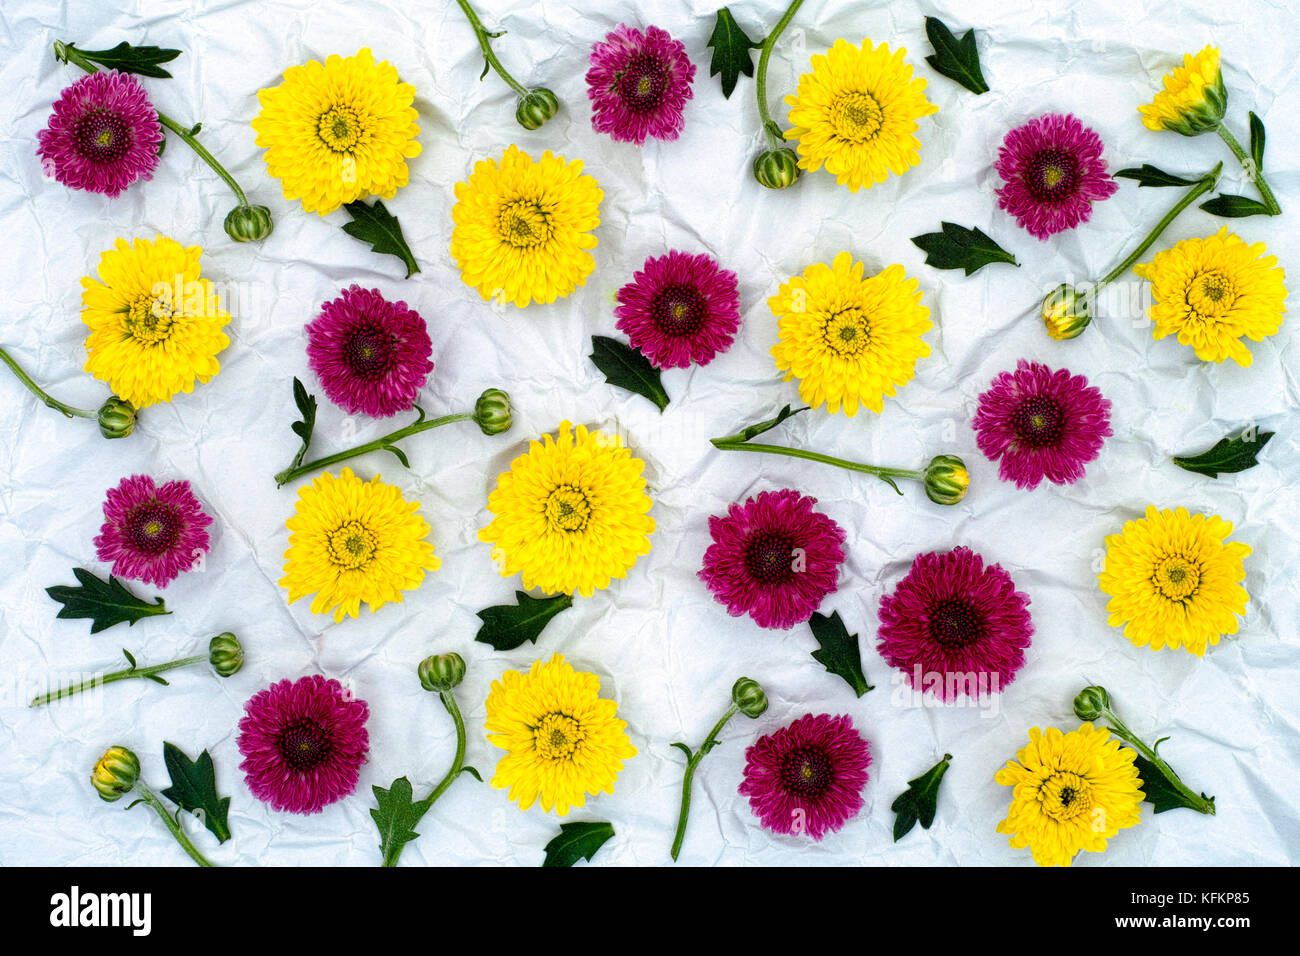 Burgundy and yellow chrysanthemum on crumpled gray paper background. Floral Pattern. - Stock Image